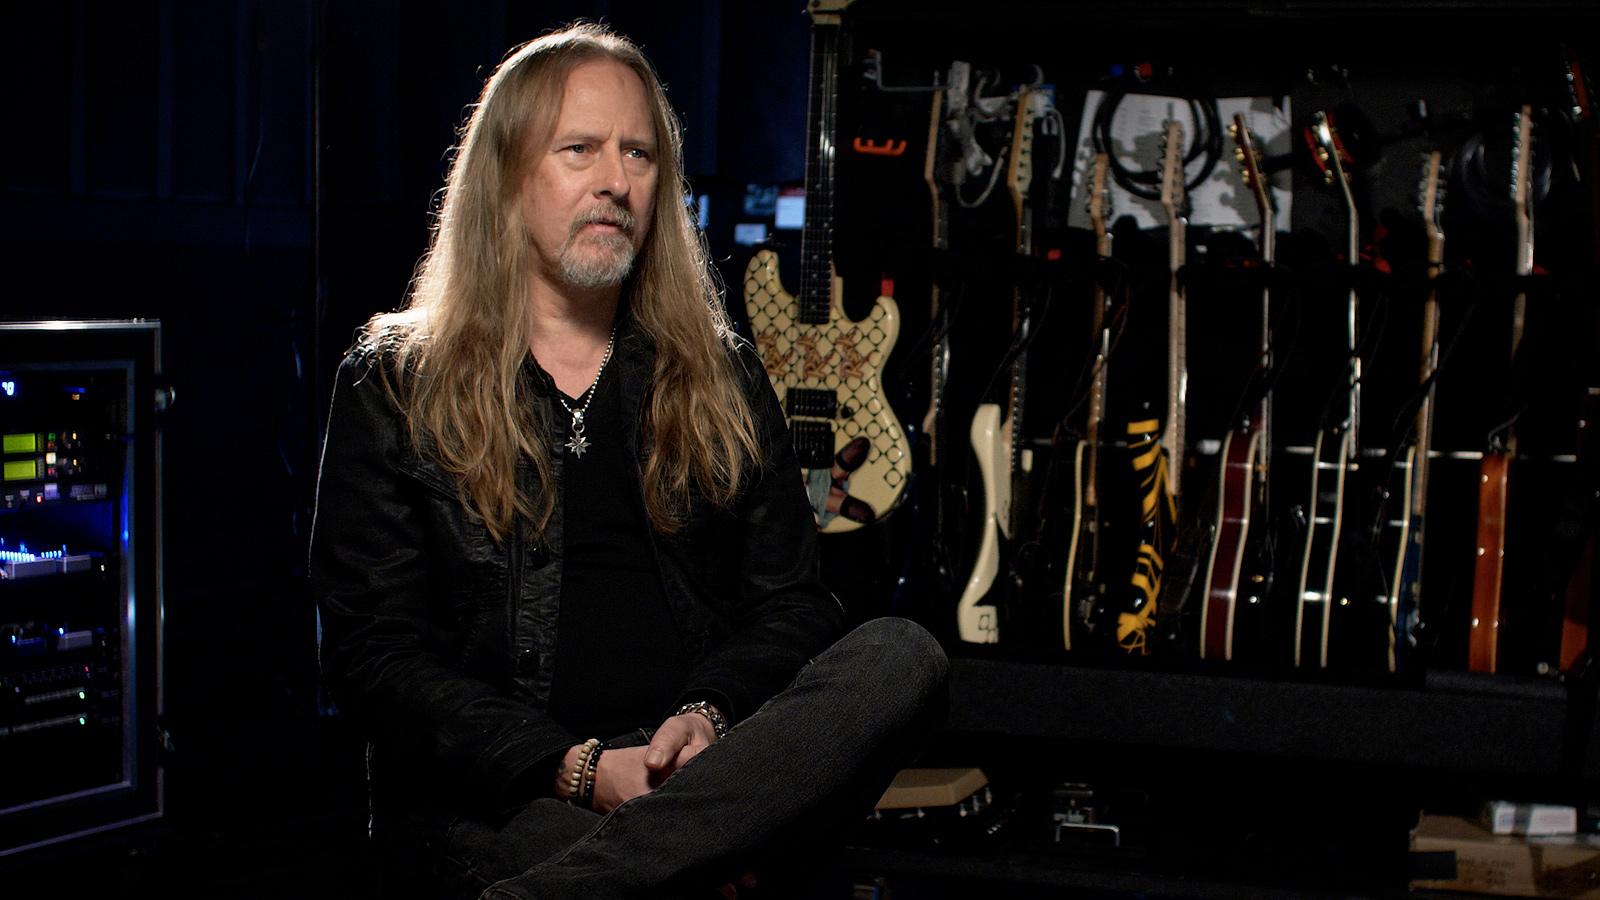 See Alice in Chains' Jerry Cantrell Play Classic Riffs, Talk 90s Grunge, More